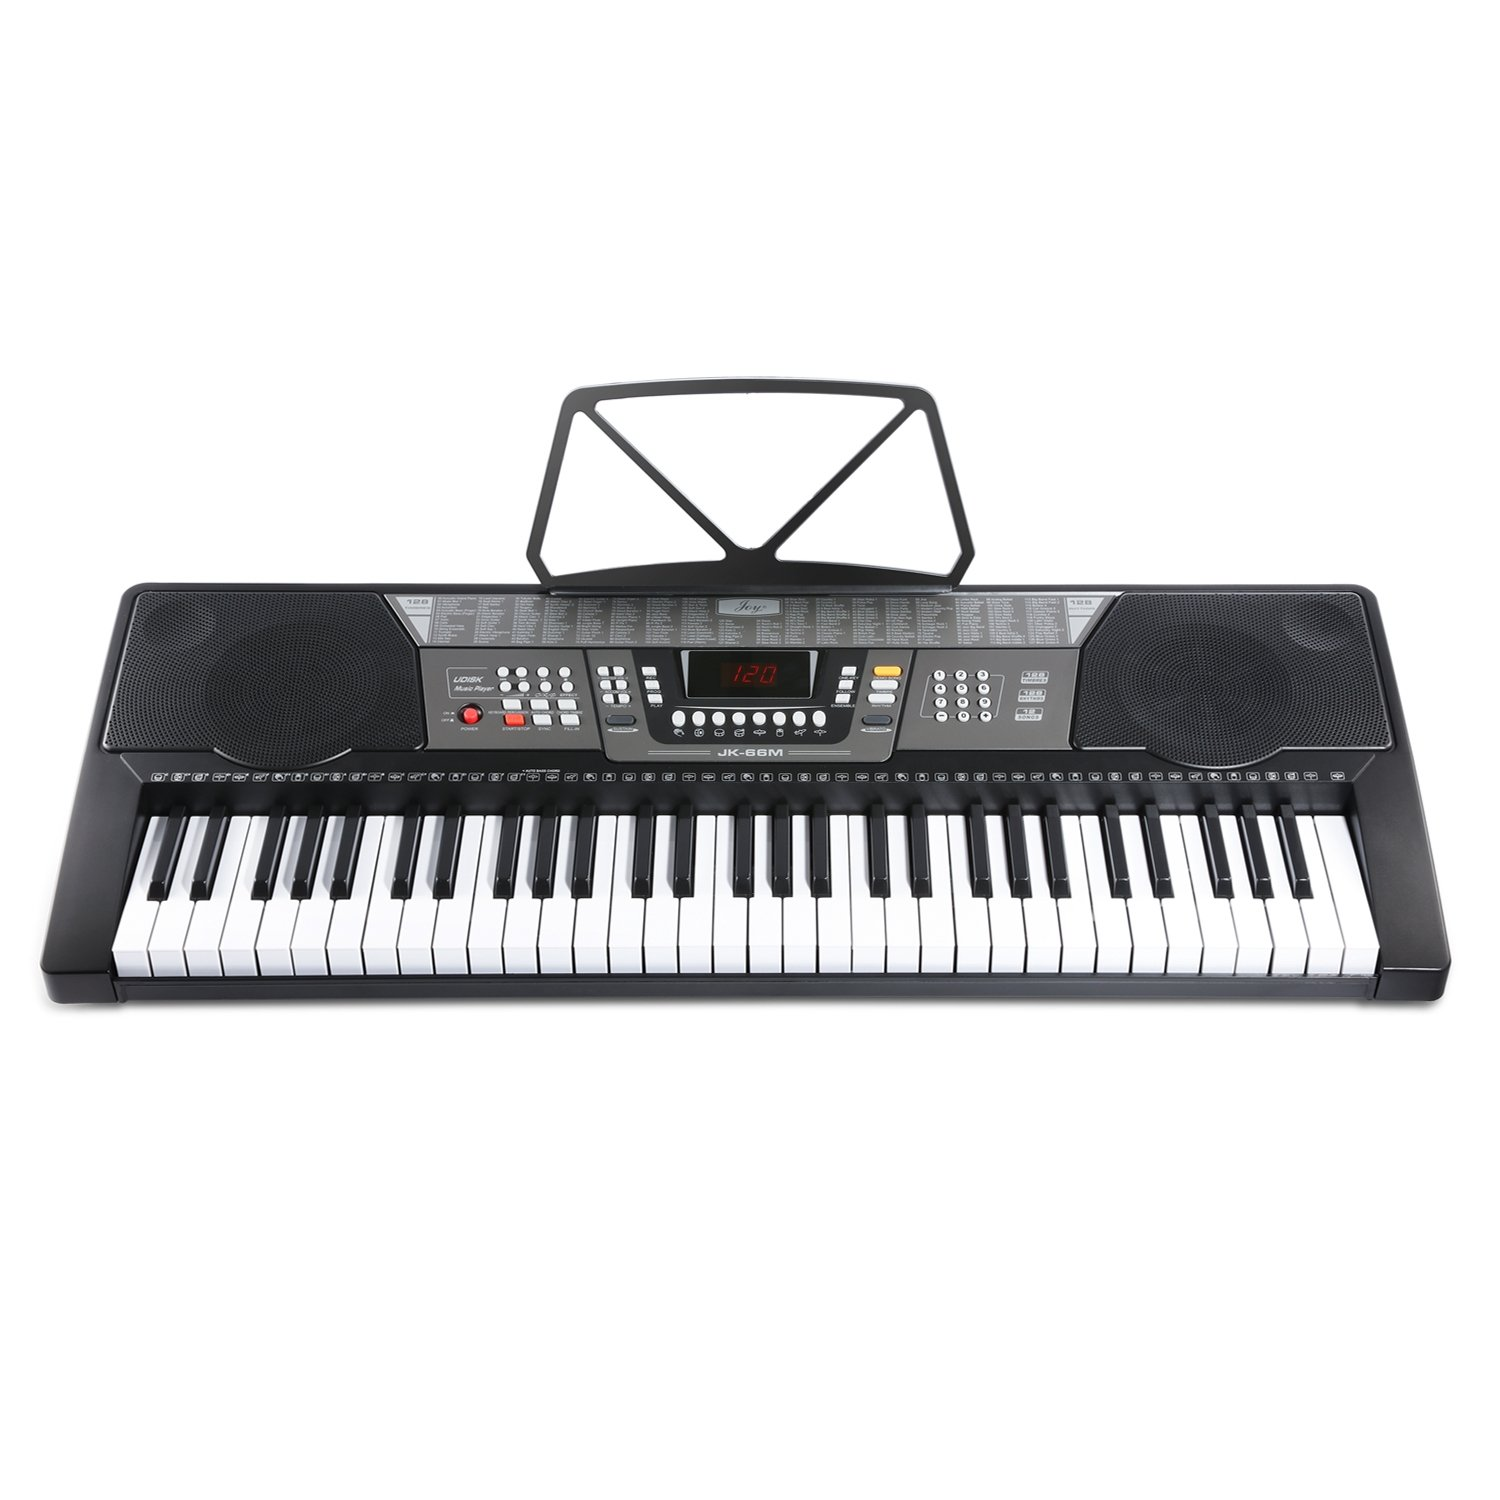 Joy JK-66M 61-Key Simulation Piano Electronic Keyboard Kit Including USB for Beginners,with Headphone,Stand,Stool,Power Suppply CHINA JOY KEYBOARDS CO. LTD JK-66M-KIT